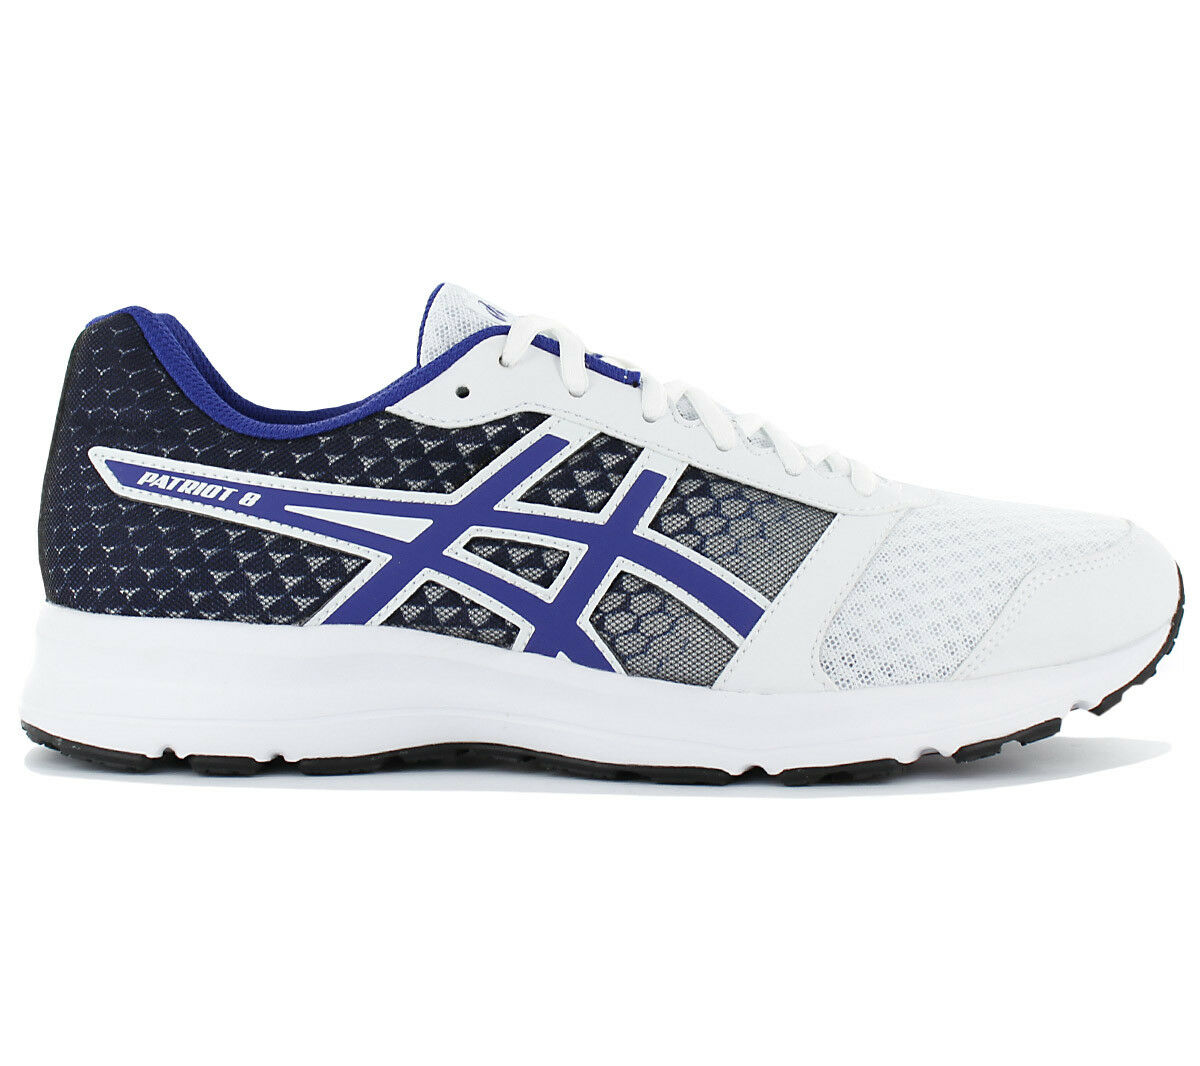 Asics Patriot 8 Mens Running shoes White Running Jogging Sport shoes t619n-0145